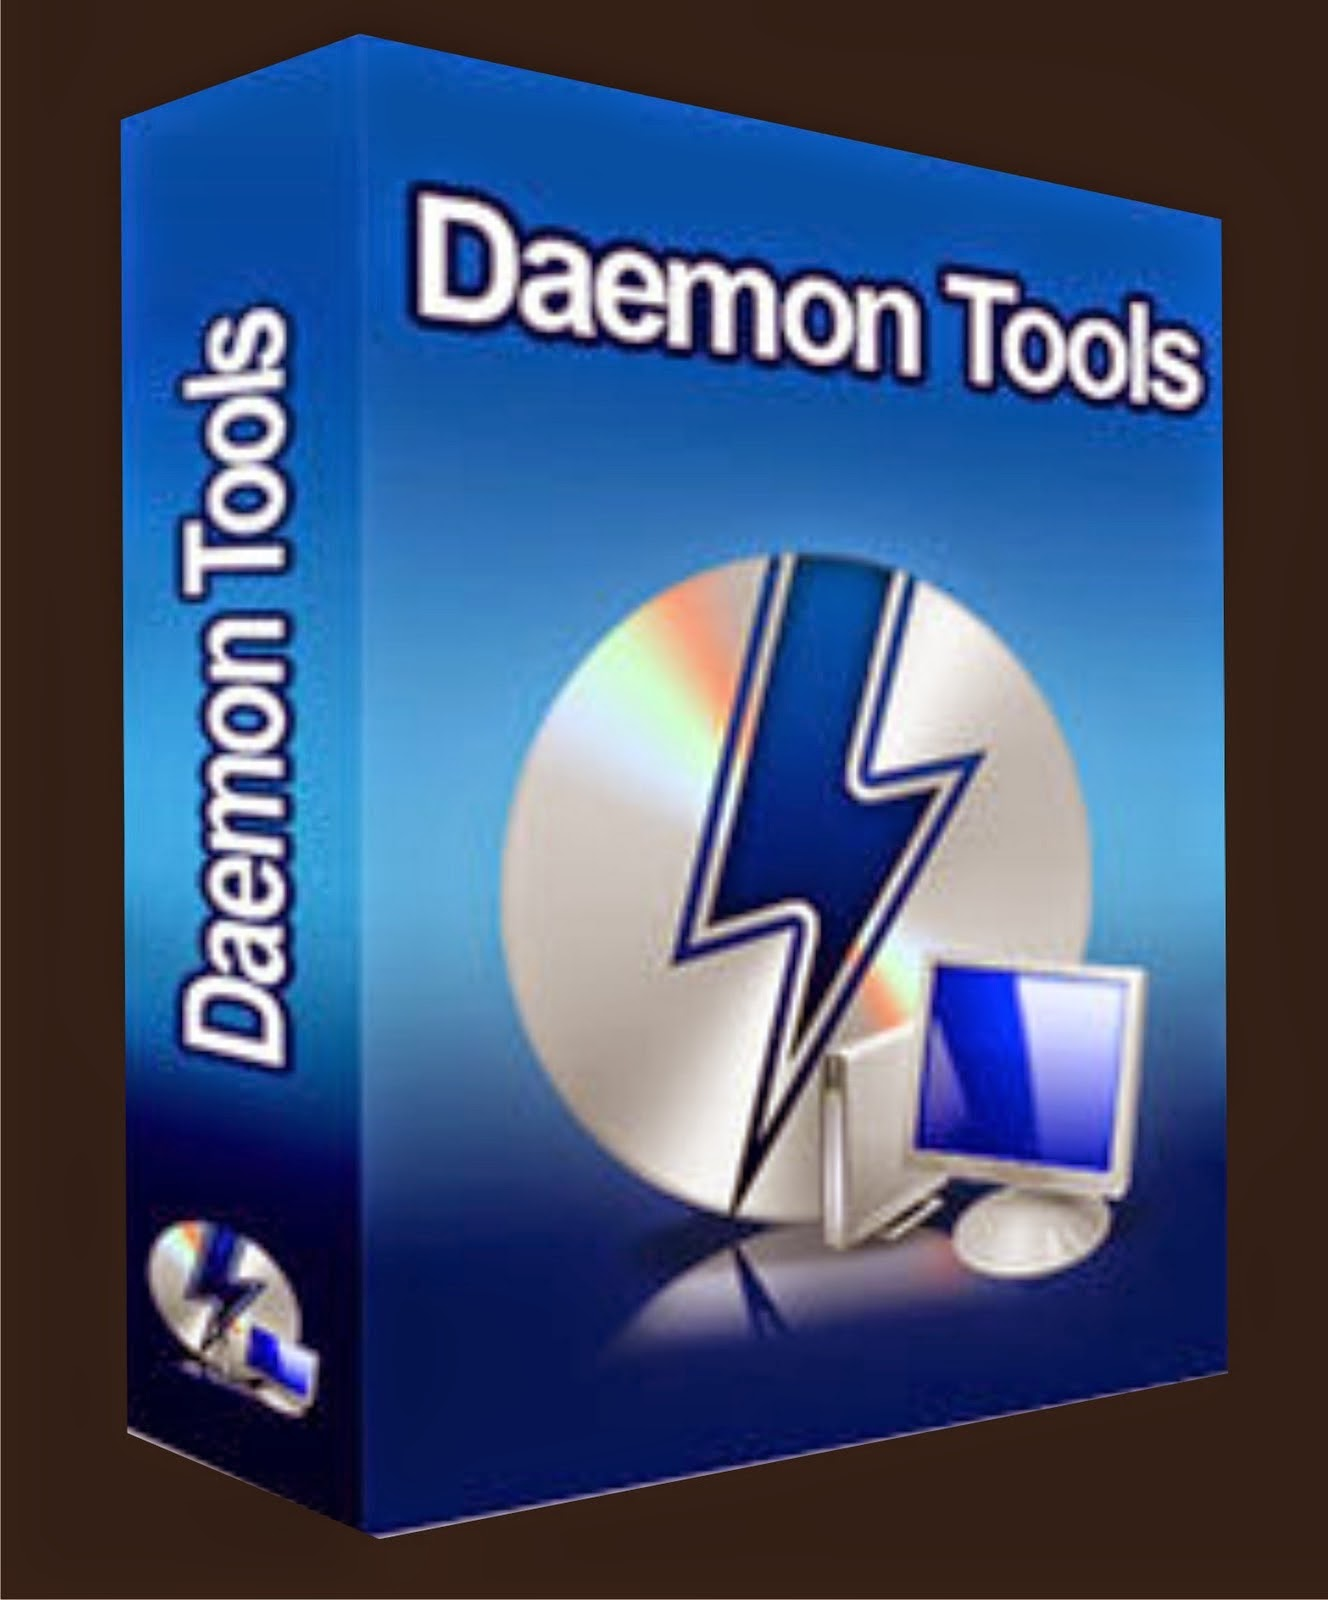 Daemon Tools Free Download Vista Compatible Games